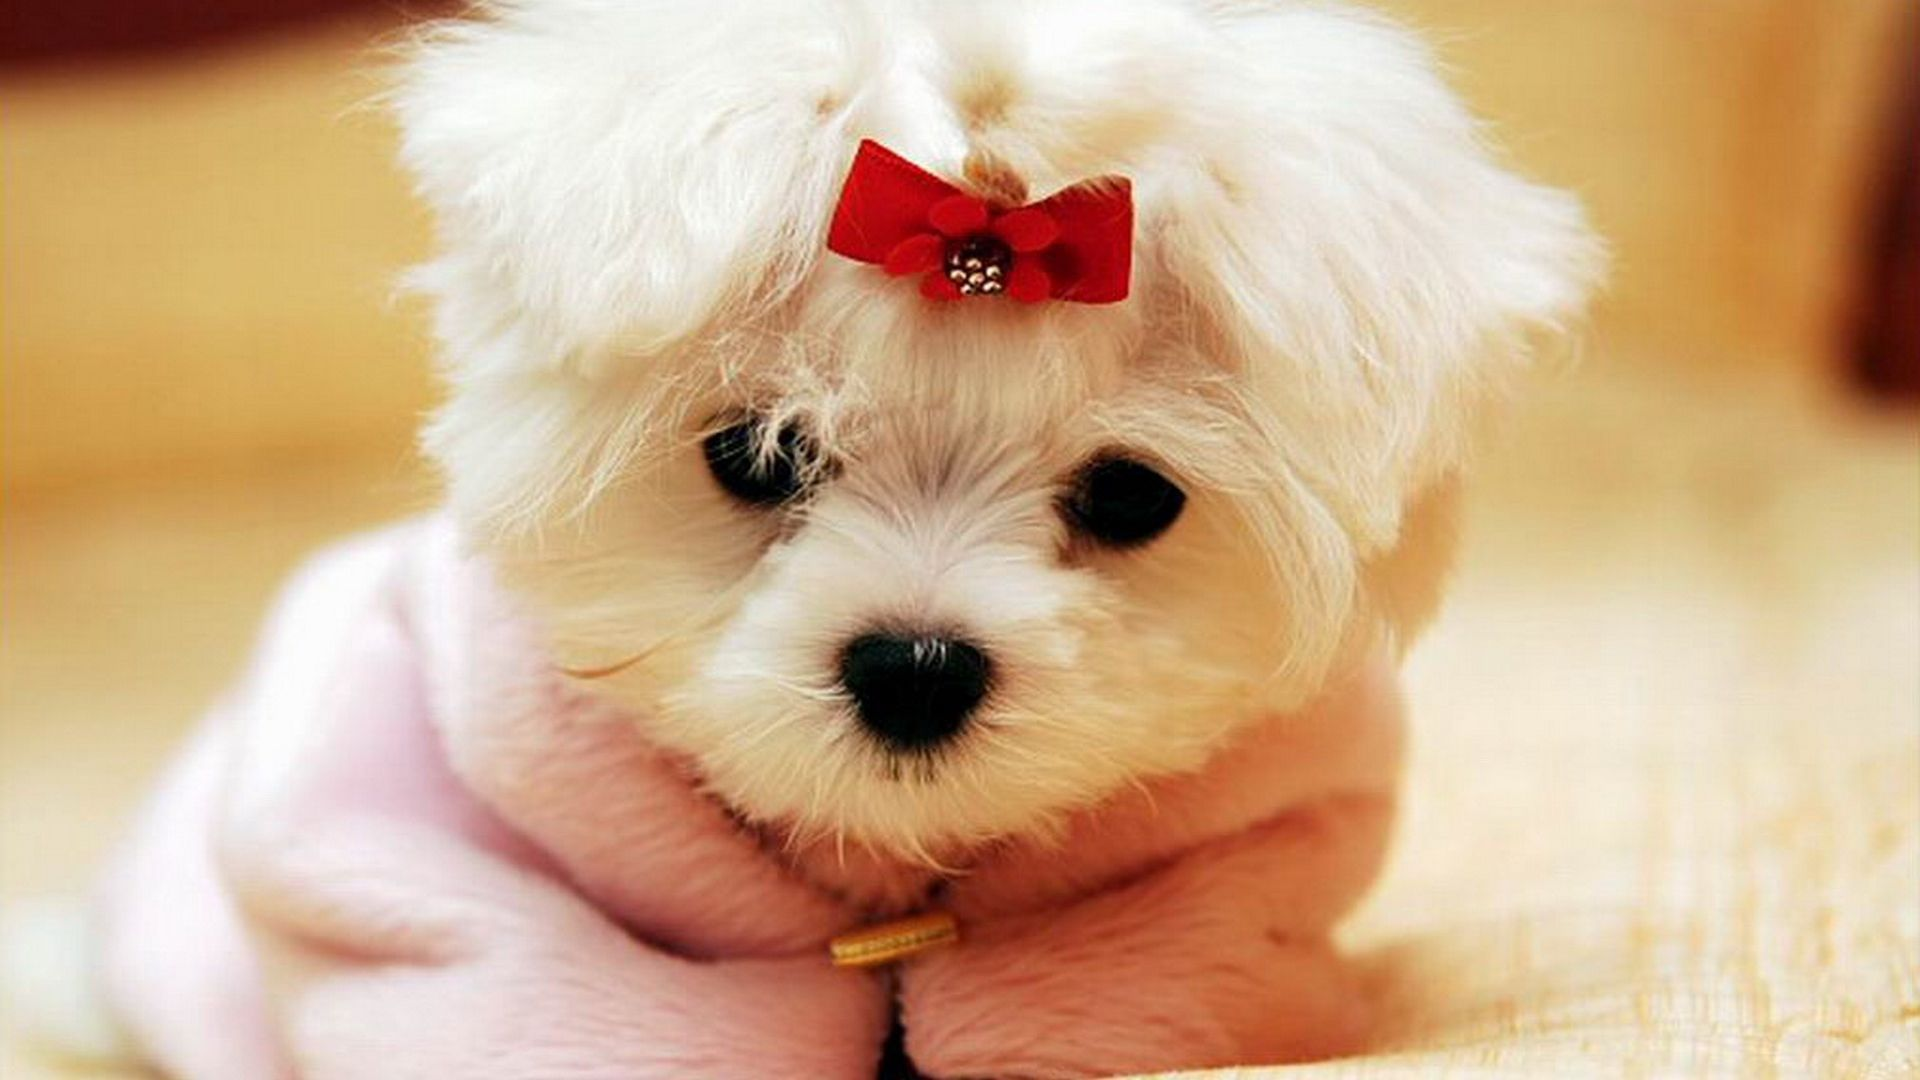 Dogs Wallpapers Full Hd P Best Hd Dogs Wallpapers Cute Animals